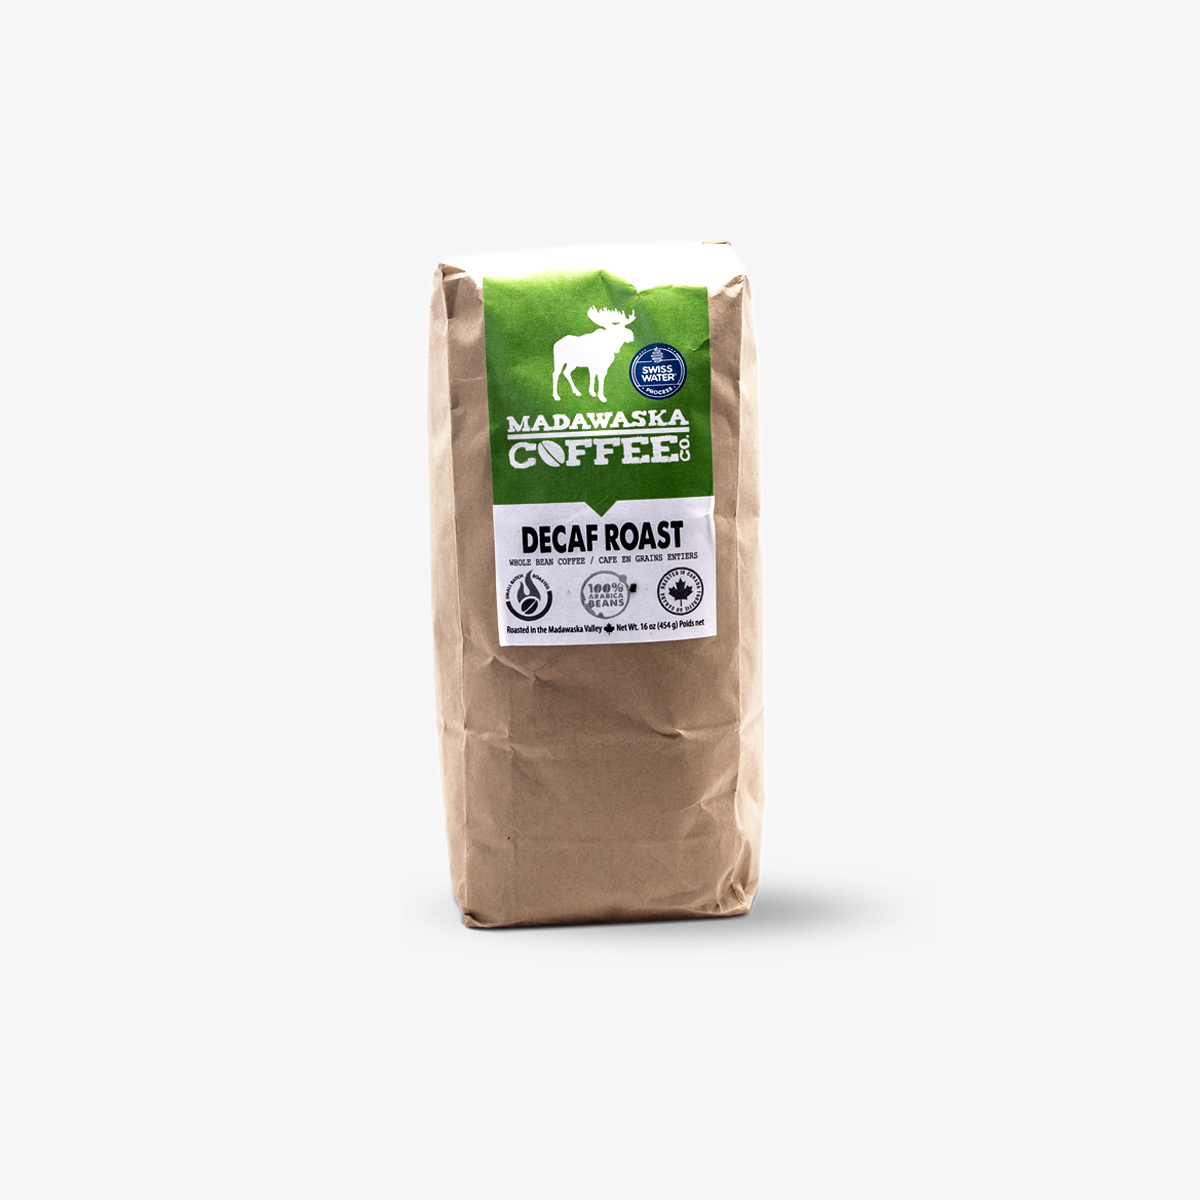 Madawaska Coffee Co. Decaf Roast Coffee